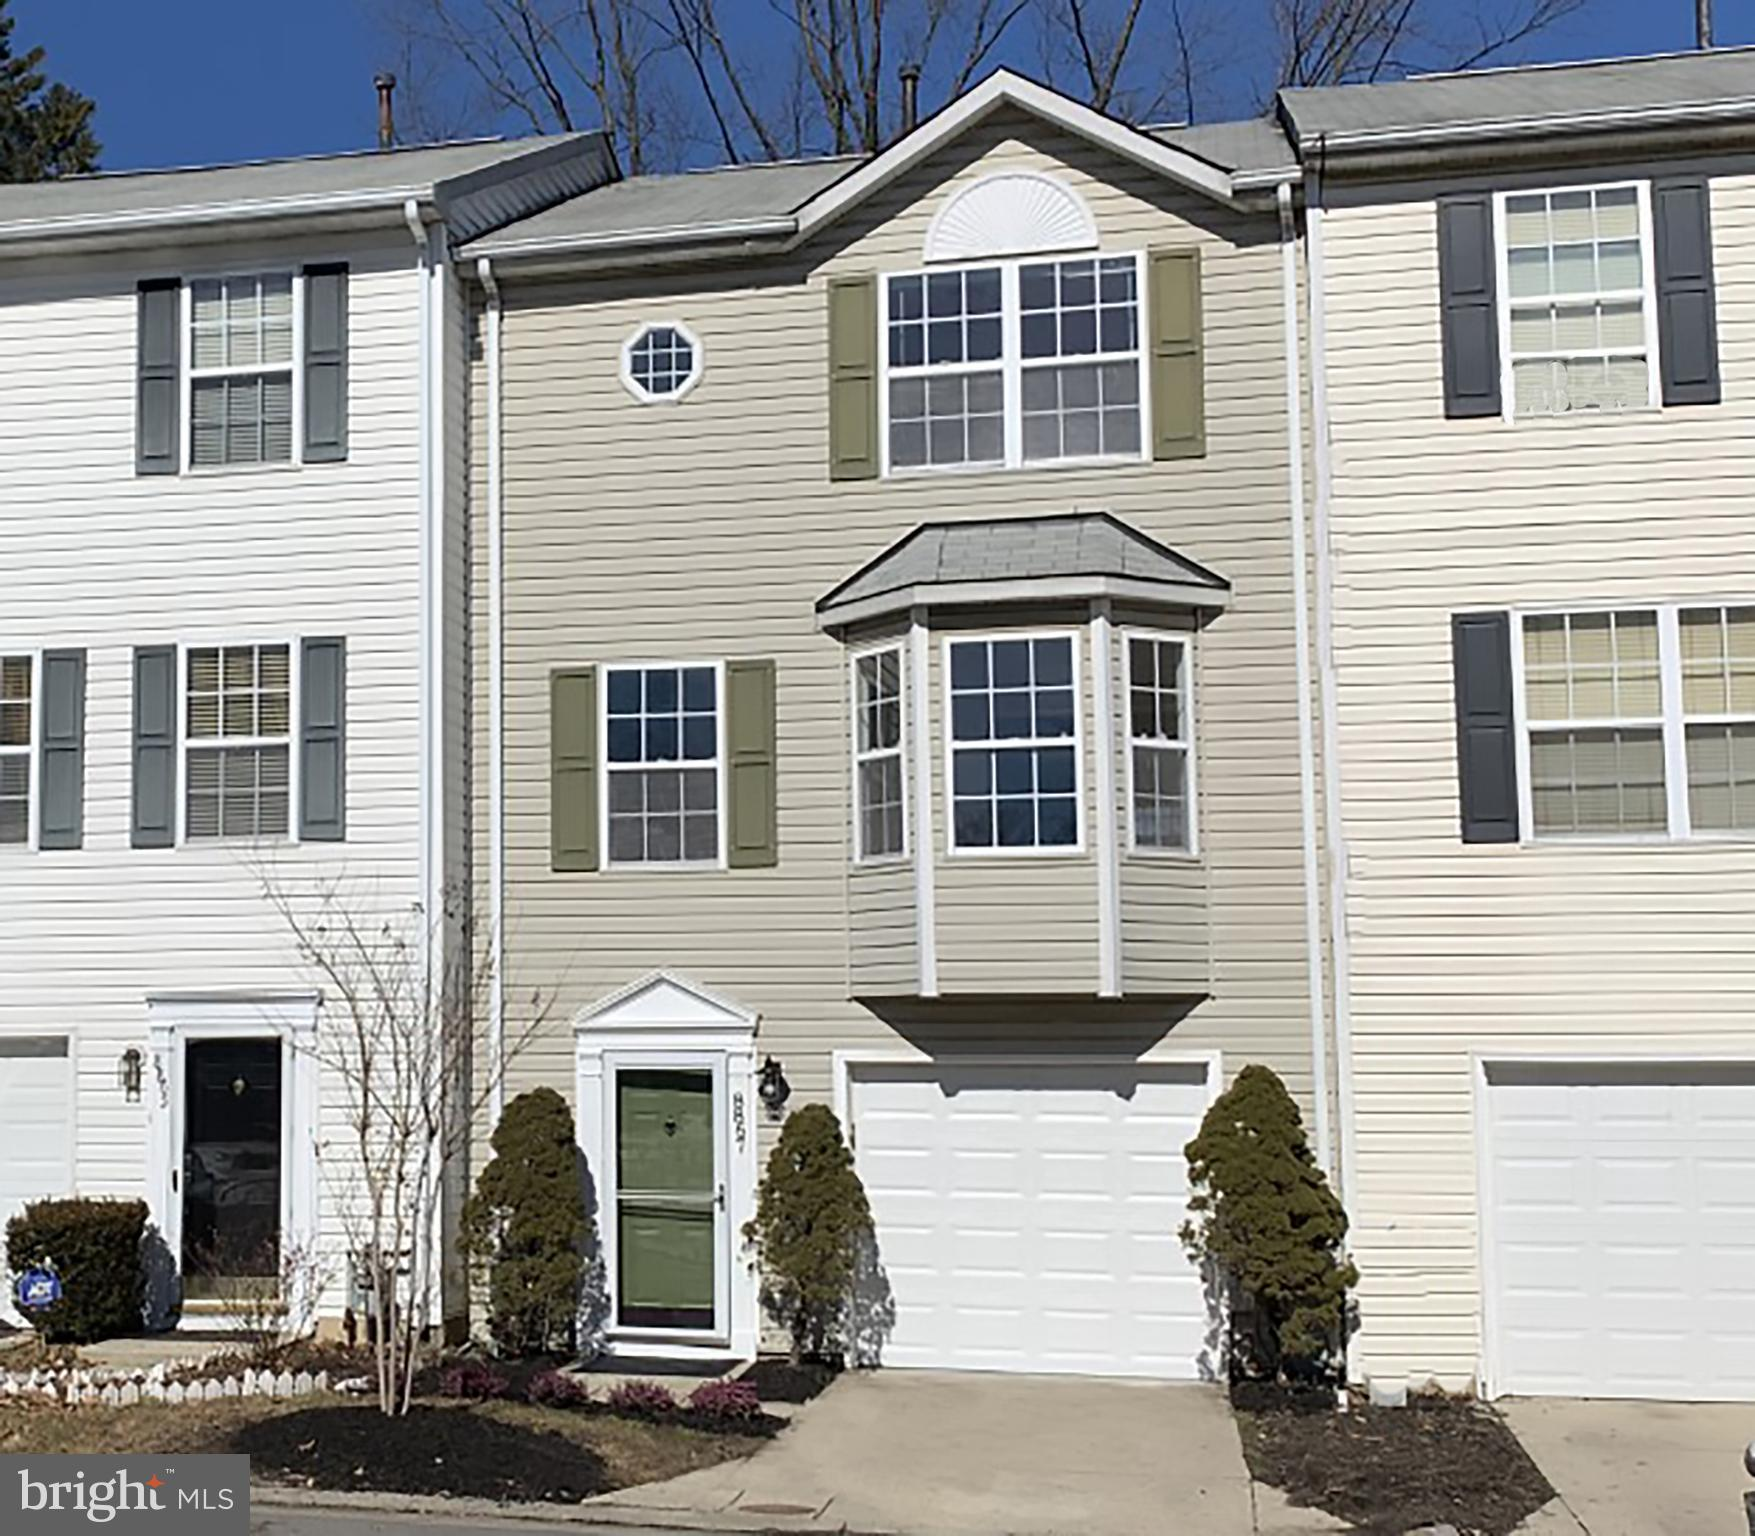 Perfect location, three bedrooms, four baths, walk out basement, and a garage! This lovely townhouse